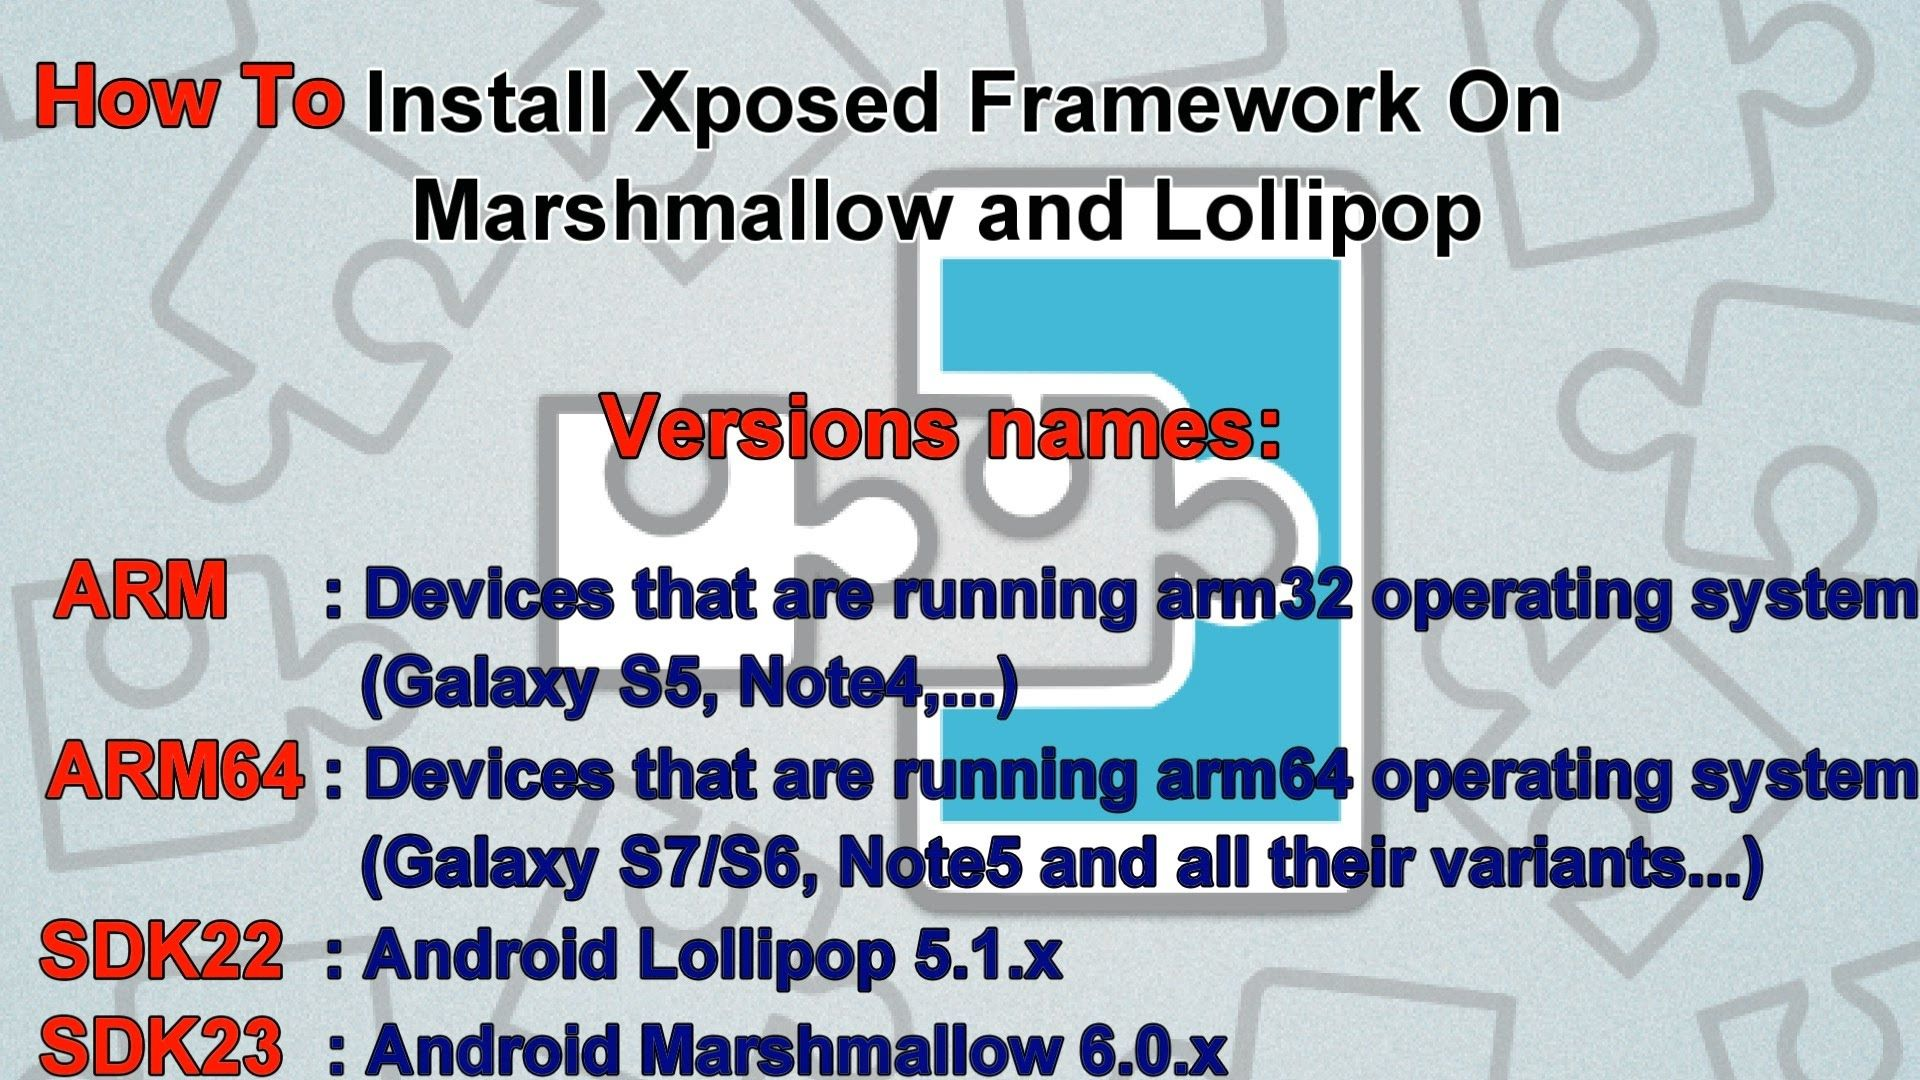 How To Install Xposed Framework On Marshmallow and Lollipop